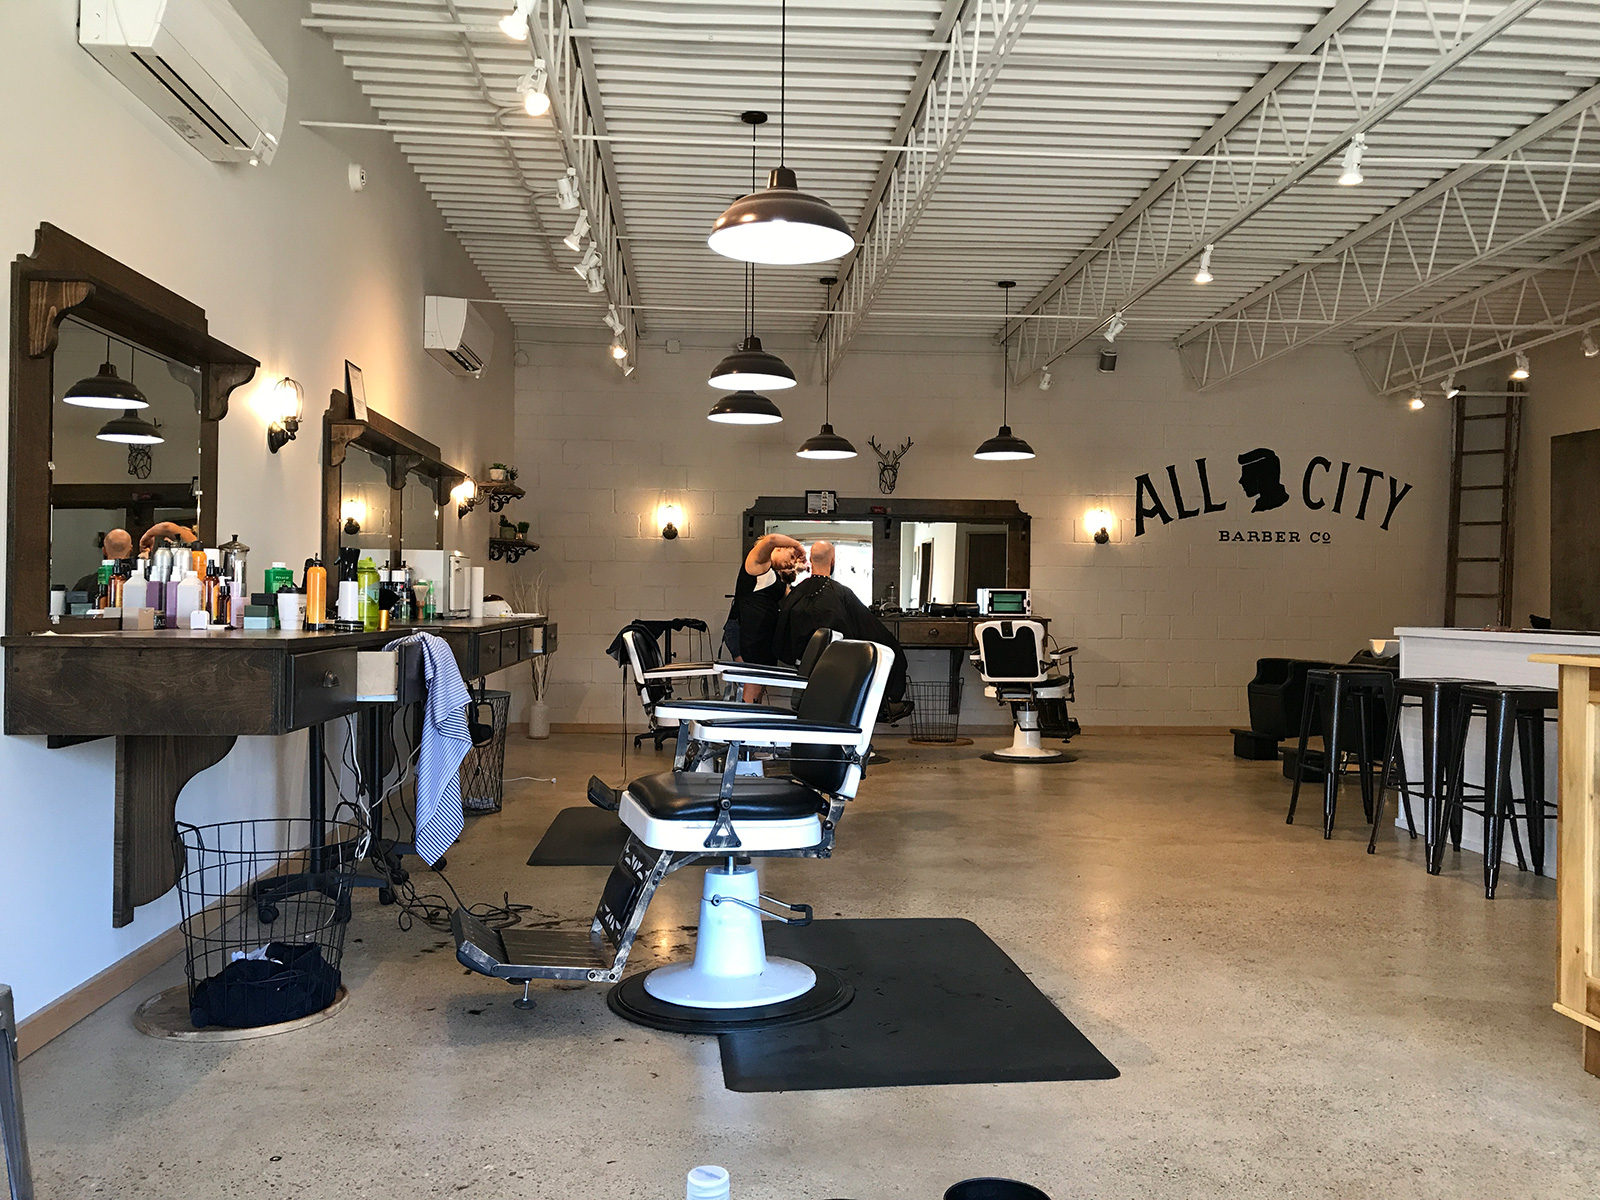 All City Barber Co. in Chattanooga, TN by Jets Like Taxis